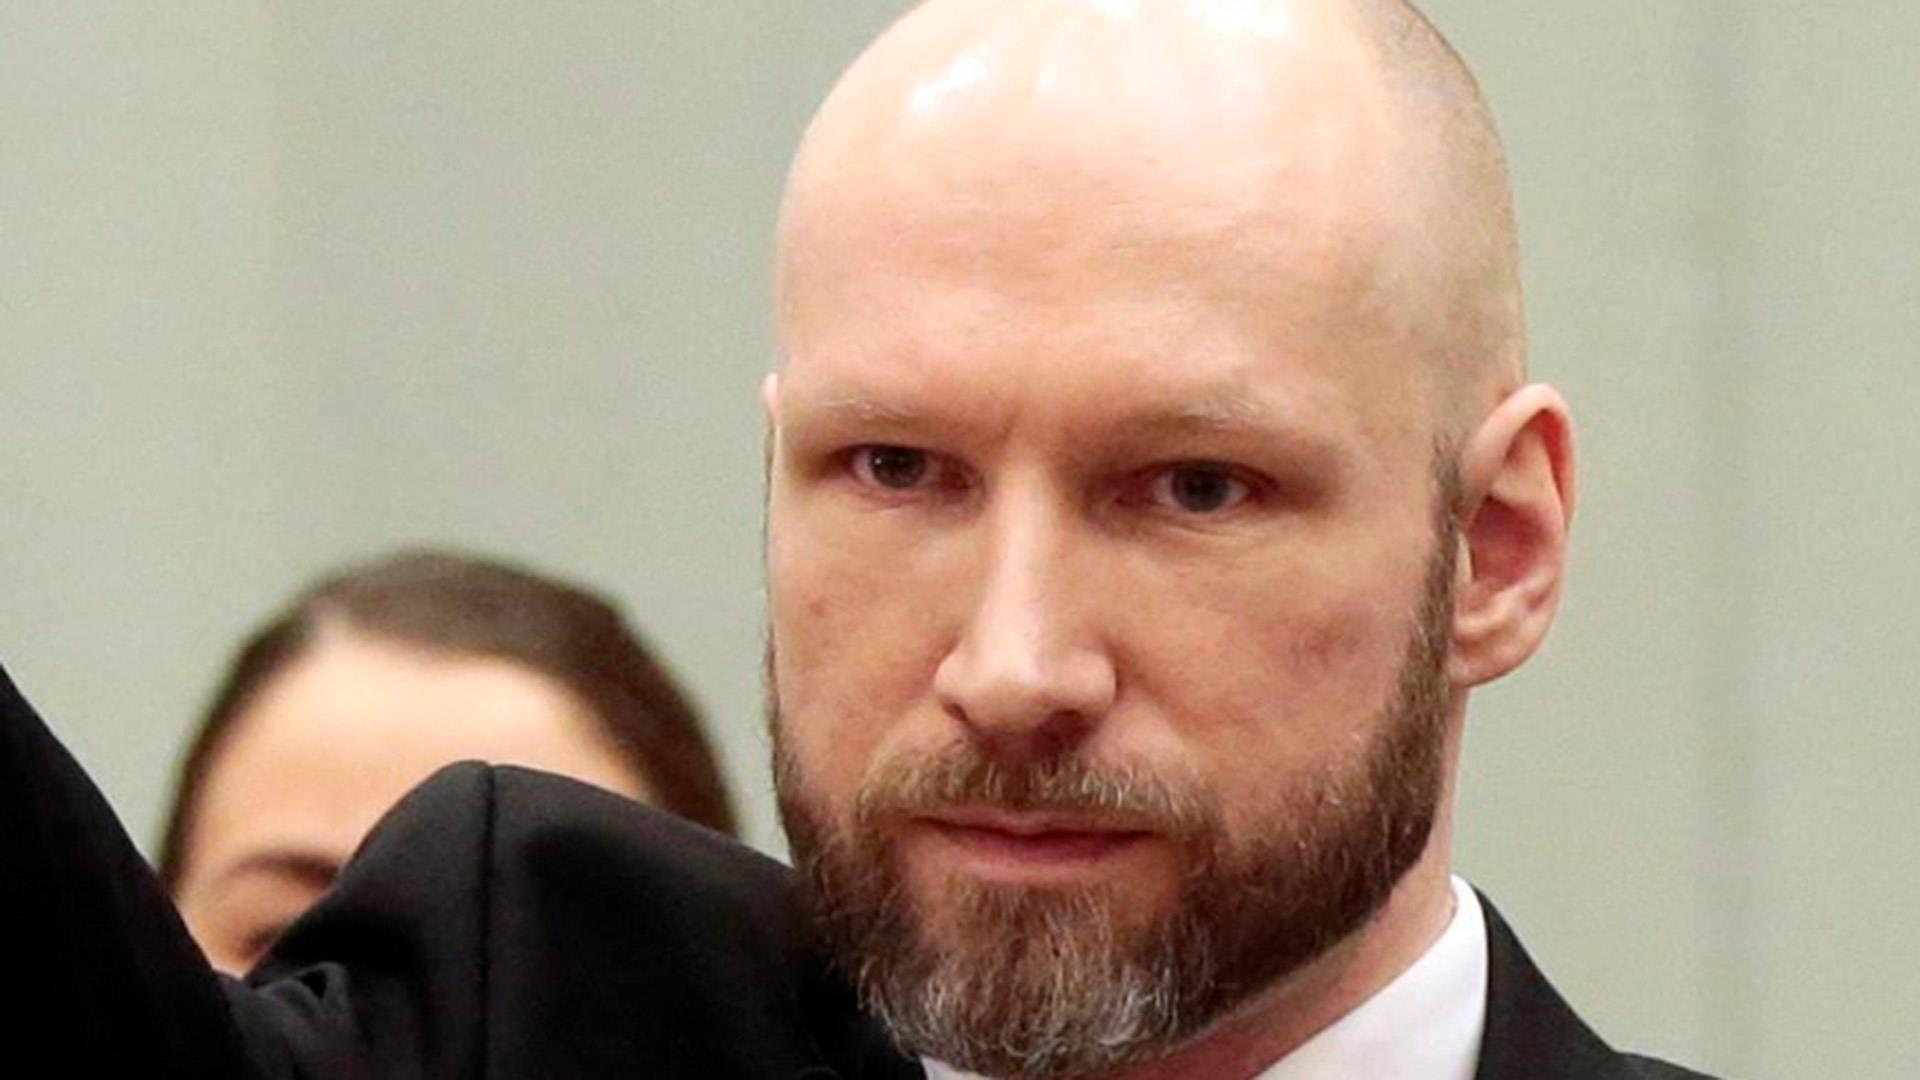 anders breivik Memorial services are being held in norway friday in memory of the 77 people killed in the country's worst terror attack, carried out five years ago by far-right terrorist anders breivik.